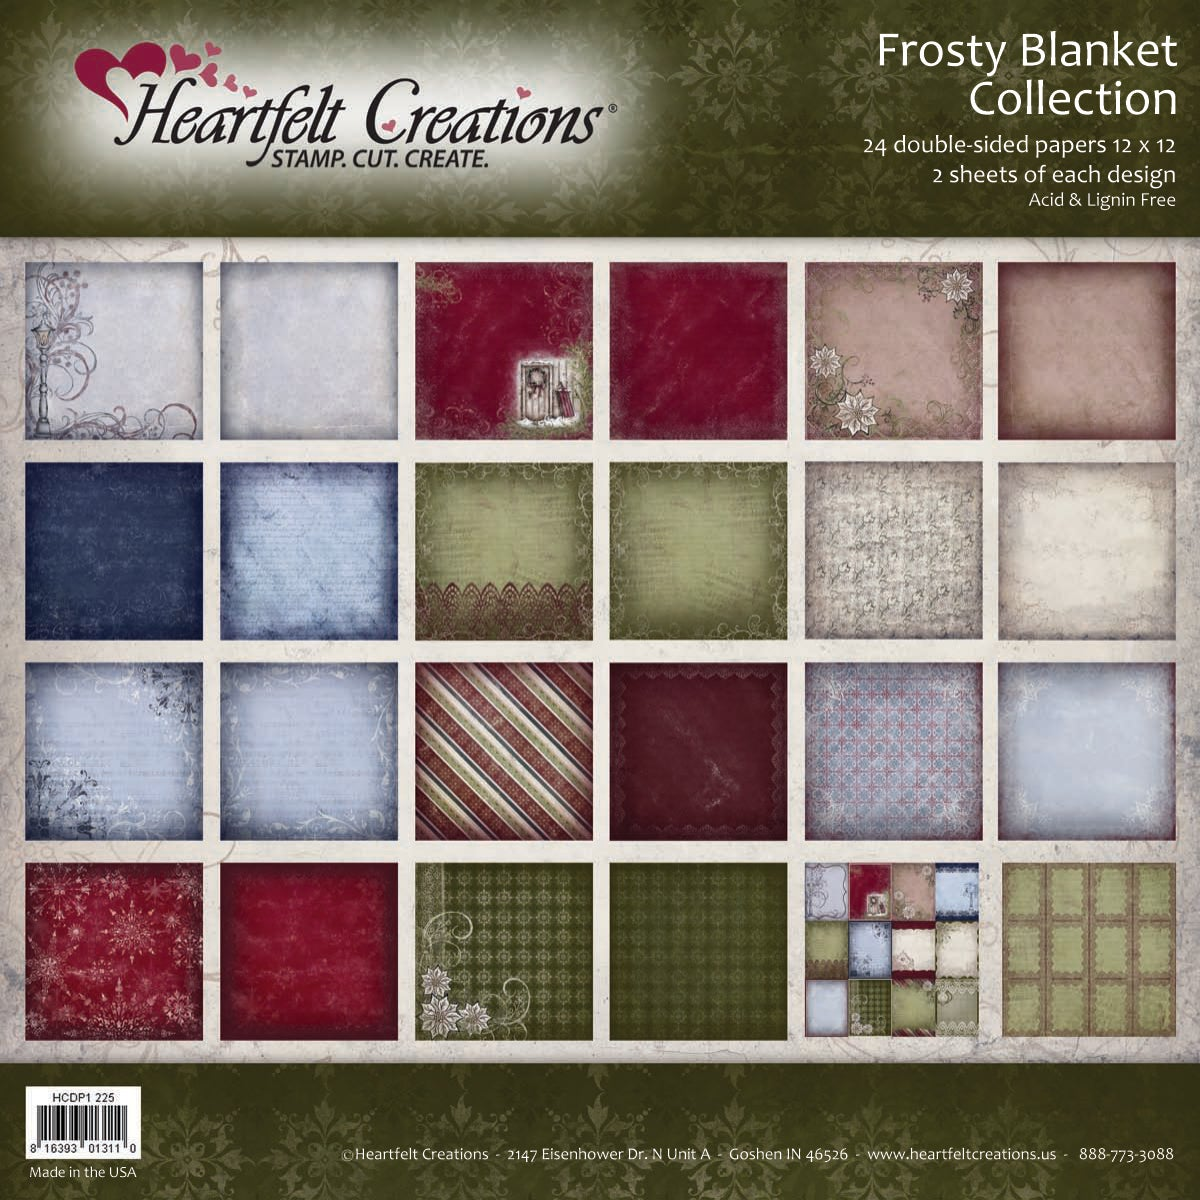 Heartfelt 12x12-inch Double-Sided 48-page 'Frosty Blanket' Paper Collection